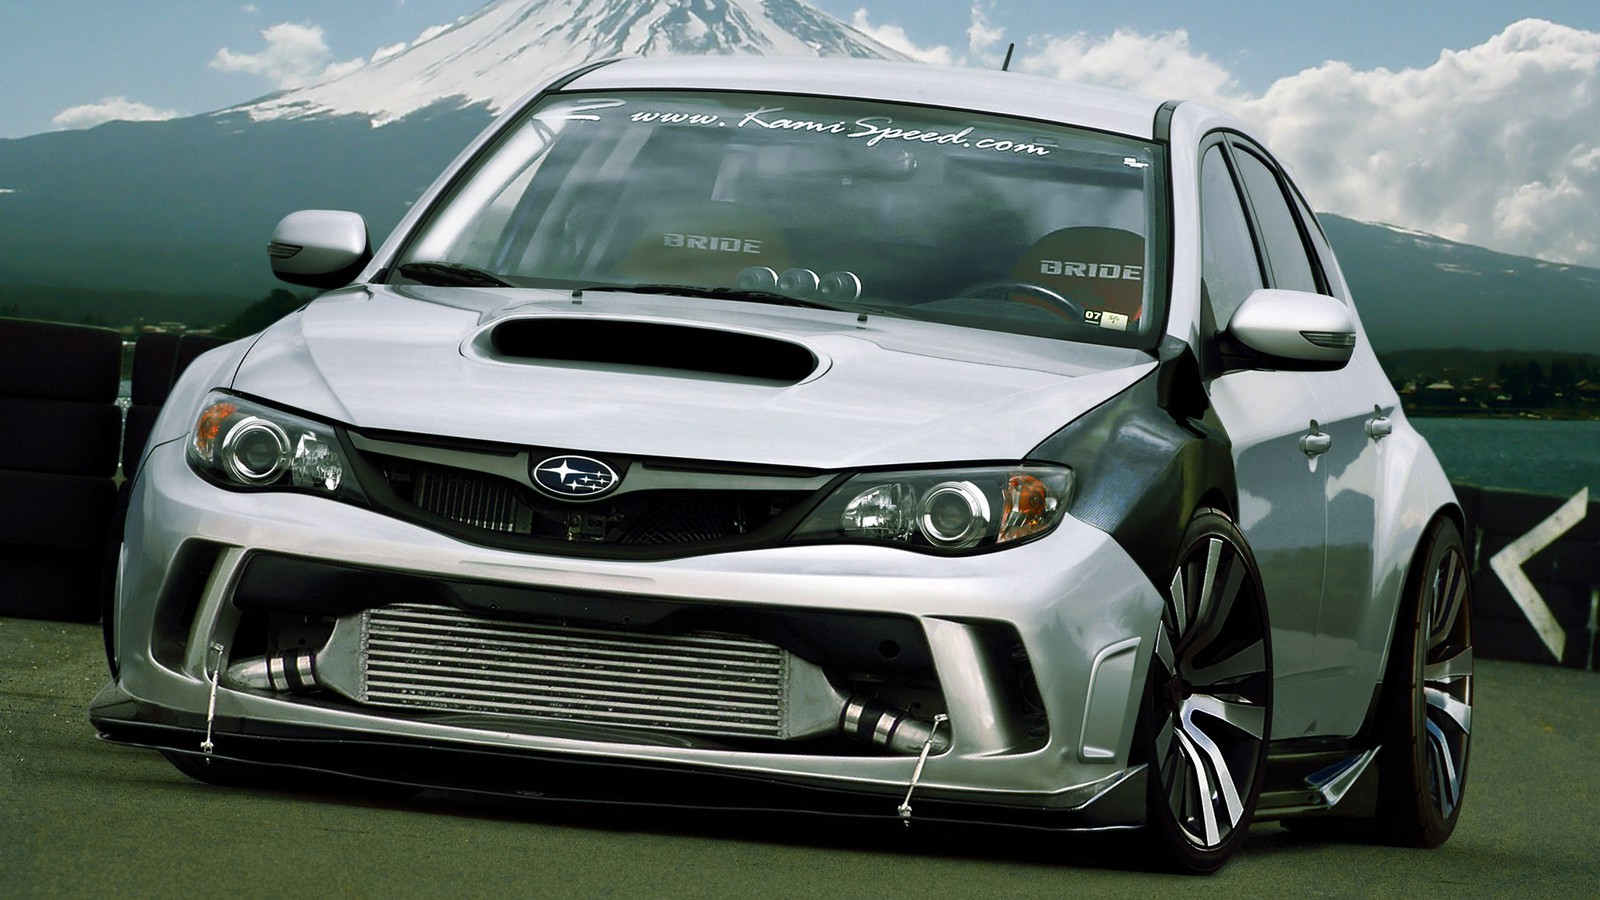 tuning subaru impreza wrx jdm sti wallpaper allwallpaper. Black Bedroom Furniture Sets. Home Design Ideas